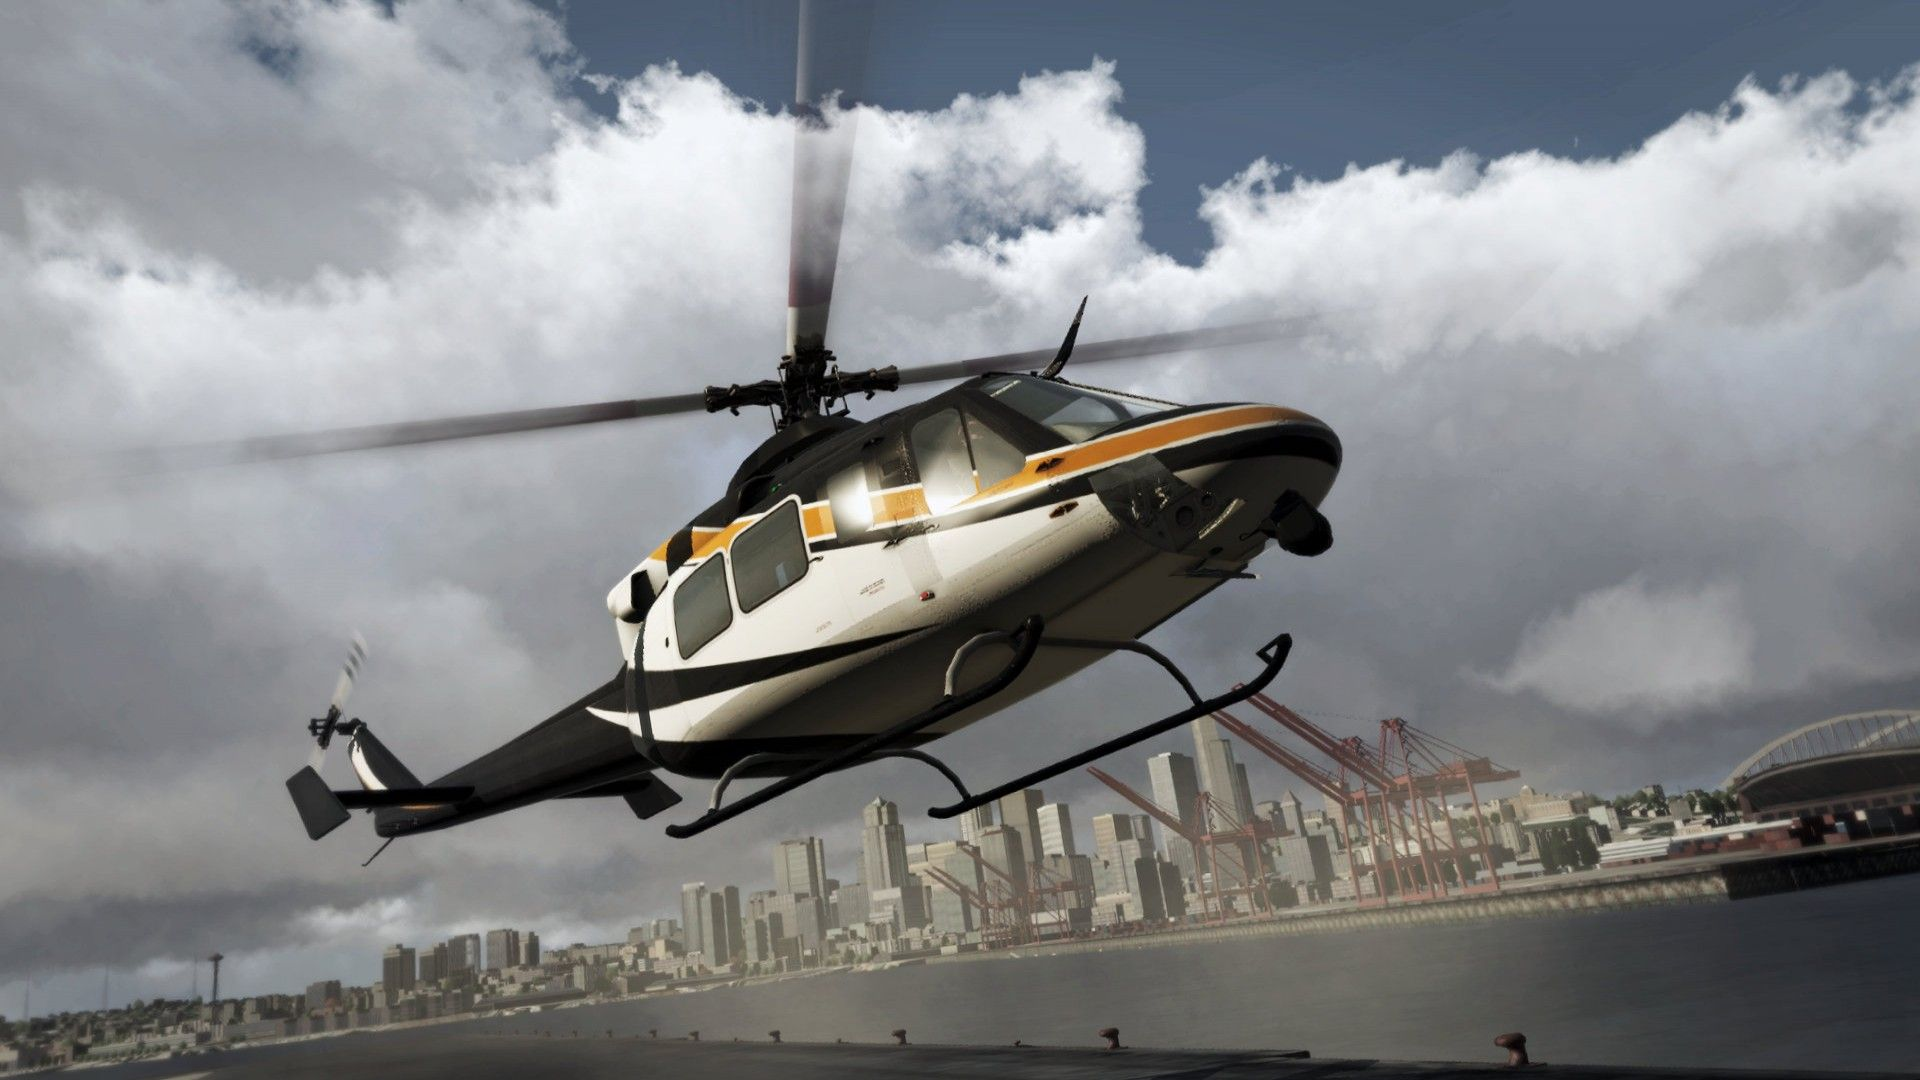 Take On Helicopters (Steam Key, Region Free)